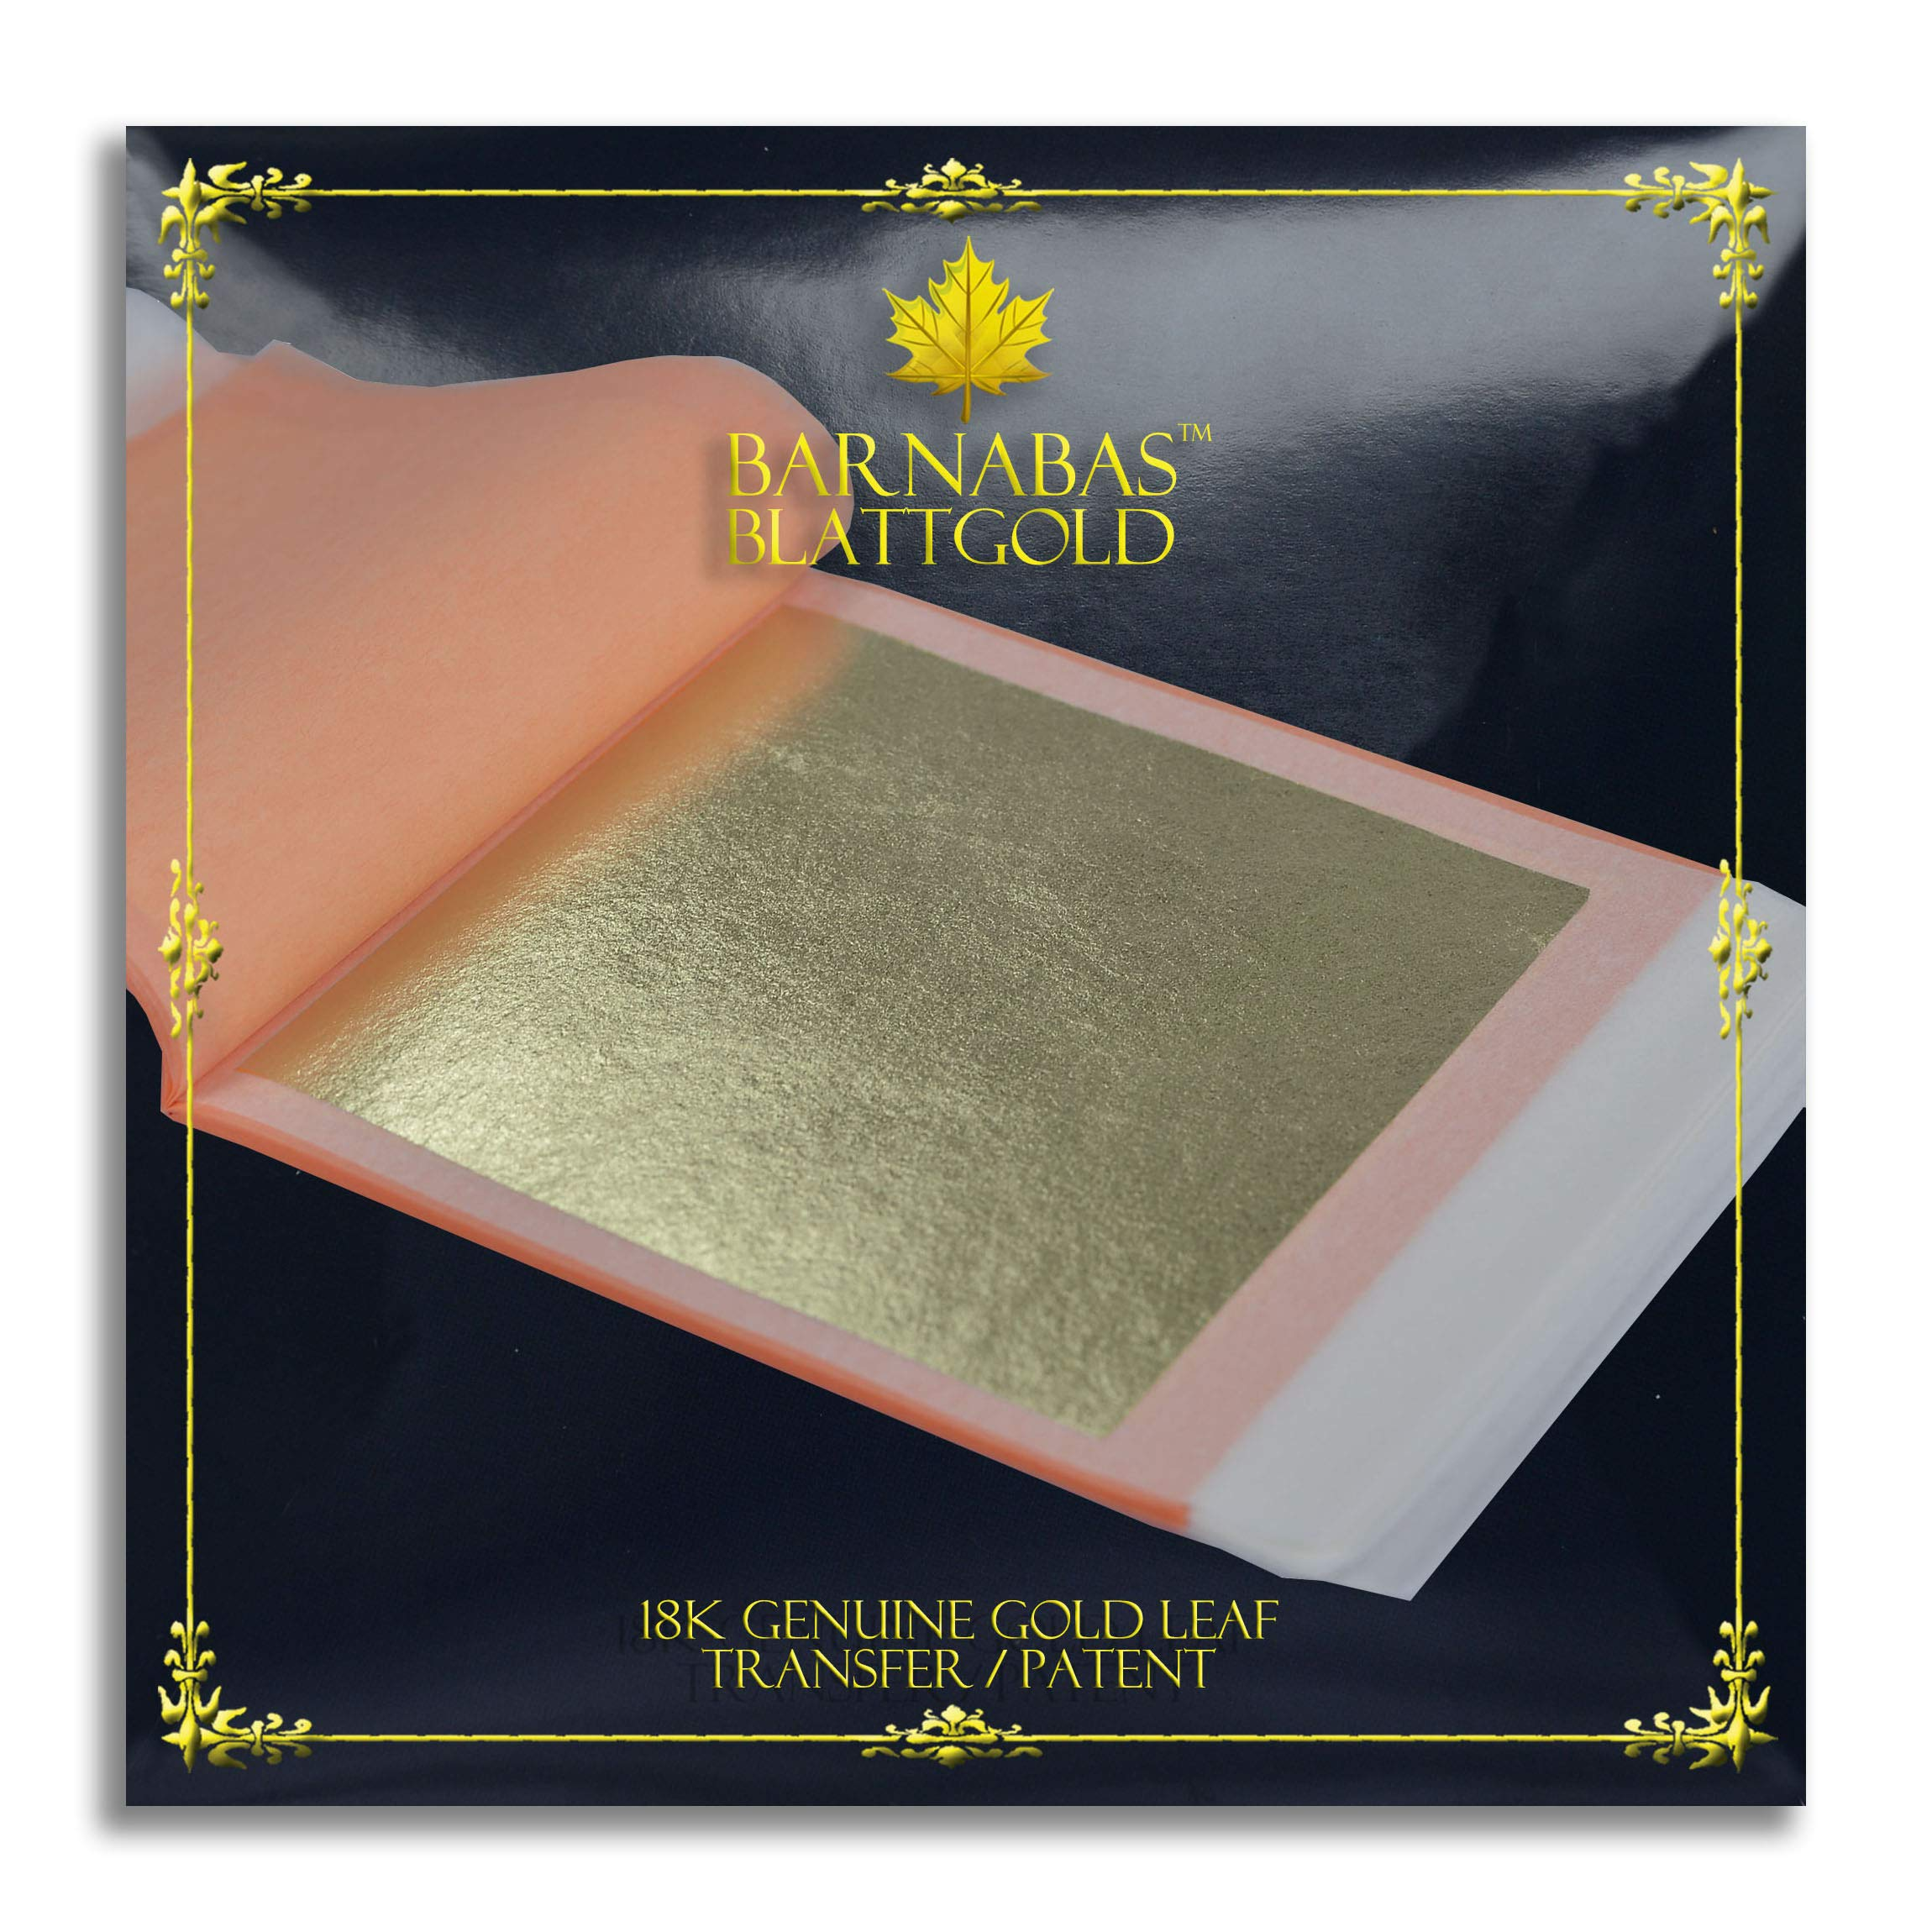 Genuine Gold Leaf Sheets 18k - by Barnabas Blattgold - 3.1 inches - 25 Sheets Booklet - Transfer Patent Leaf